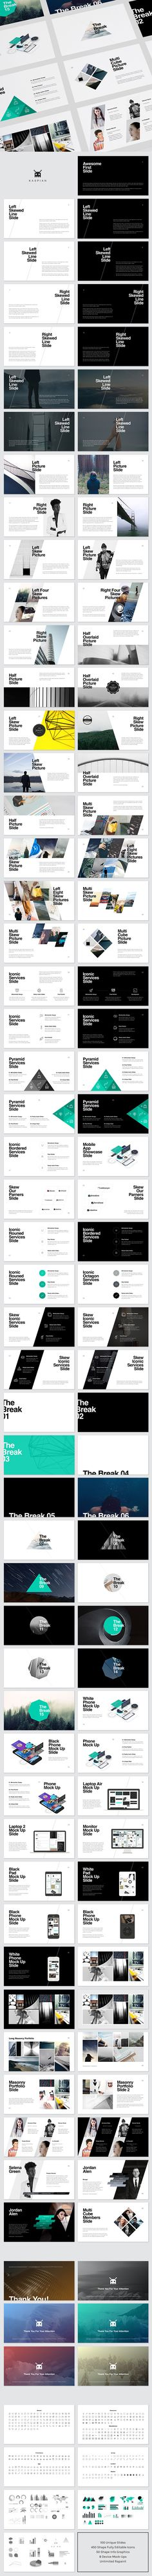 KASPIAN PowerPoint Presentation - Creative PowerPoint Templates